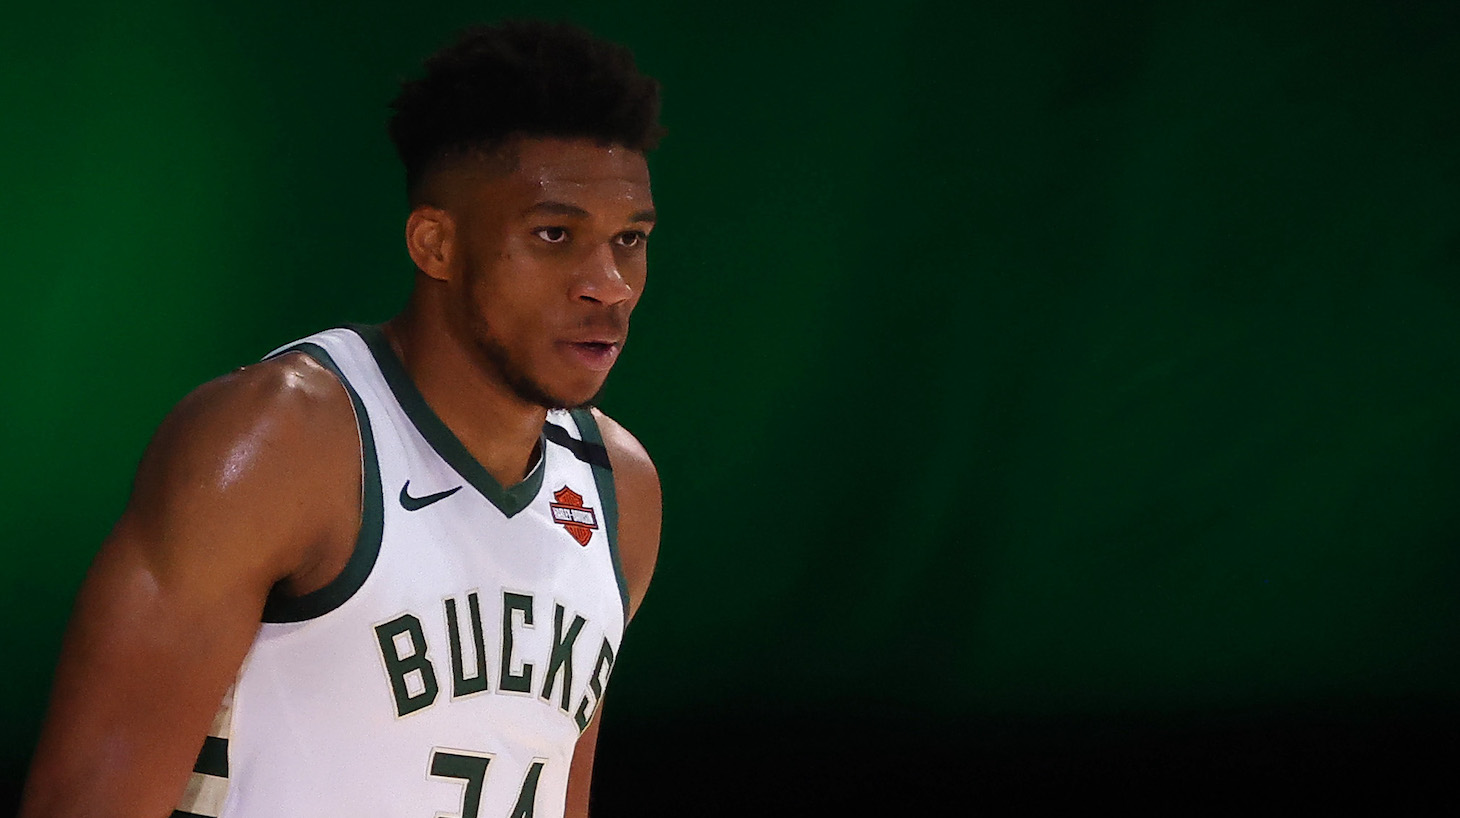 LAKE BUENA VISTA, FLORIDA - AUGUST 29: Giannis Antetokounmpo #34 of the Milwaukee Bucks looks on against the Orlando Magic during the third quarter in Game Five of the Eastern Conference First Round during the 2020 NBA Playoffs at AdventHealth Arena at ESPN Wide World Of Sports Complex on August 29, 2020 in Lake Buena Vista, Florida. NOTE TO USER: User expressly acknowledges and agrees that, by downloading and or using this photograph, User is consenting to the terms and conditions of the Getty Images License Agreement. (Photo by Kevin C. Cox/Getty Images)